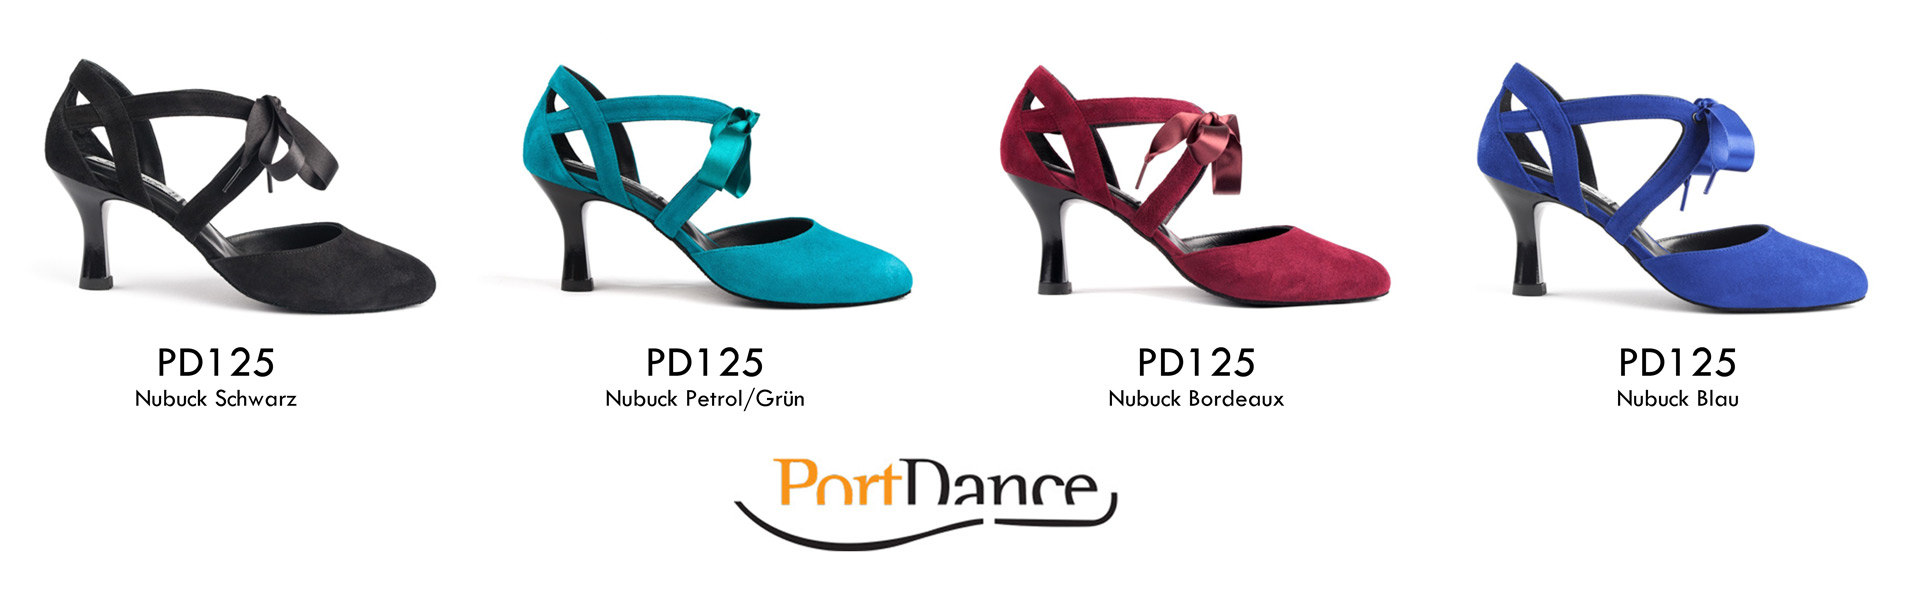 Portdance PD125